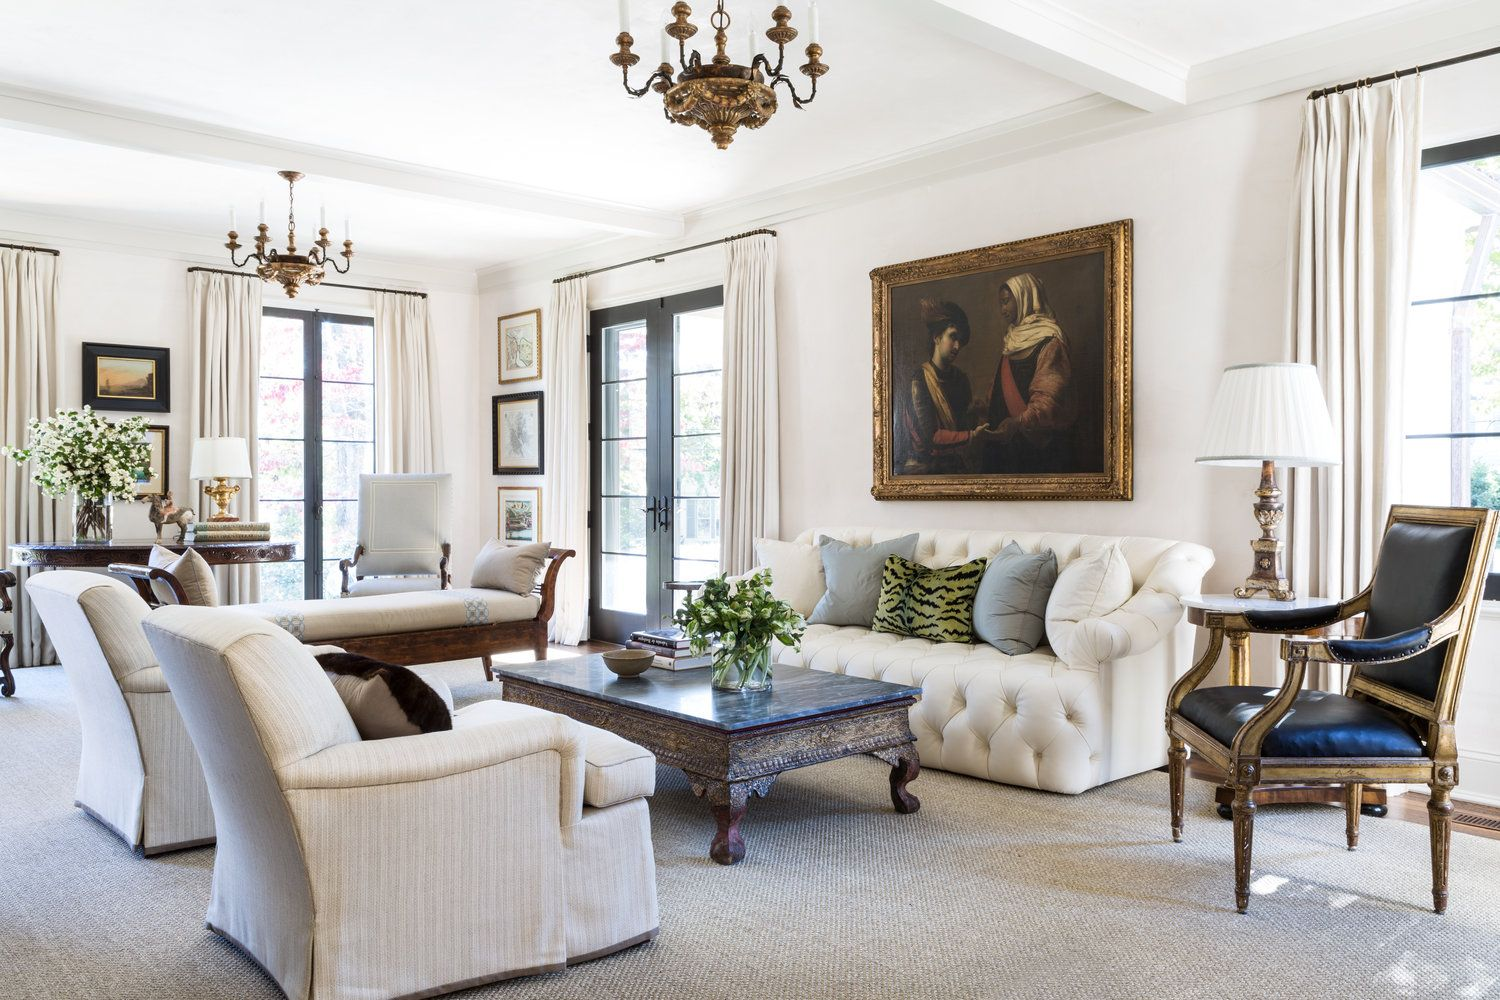 20 Top Interior Design Firms In Washington You'll Love_2 top interior design firms in washington Top Interior Design Firms in Washington 20 Top Interior Design Firms In Washington Youll Love 2